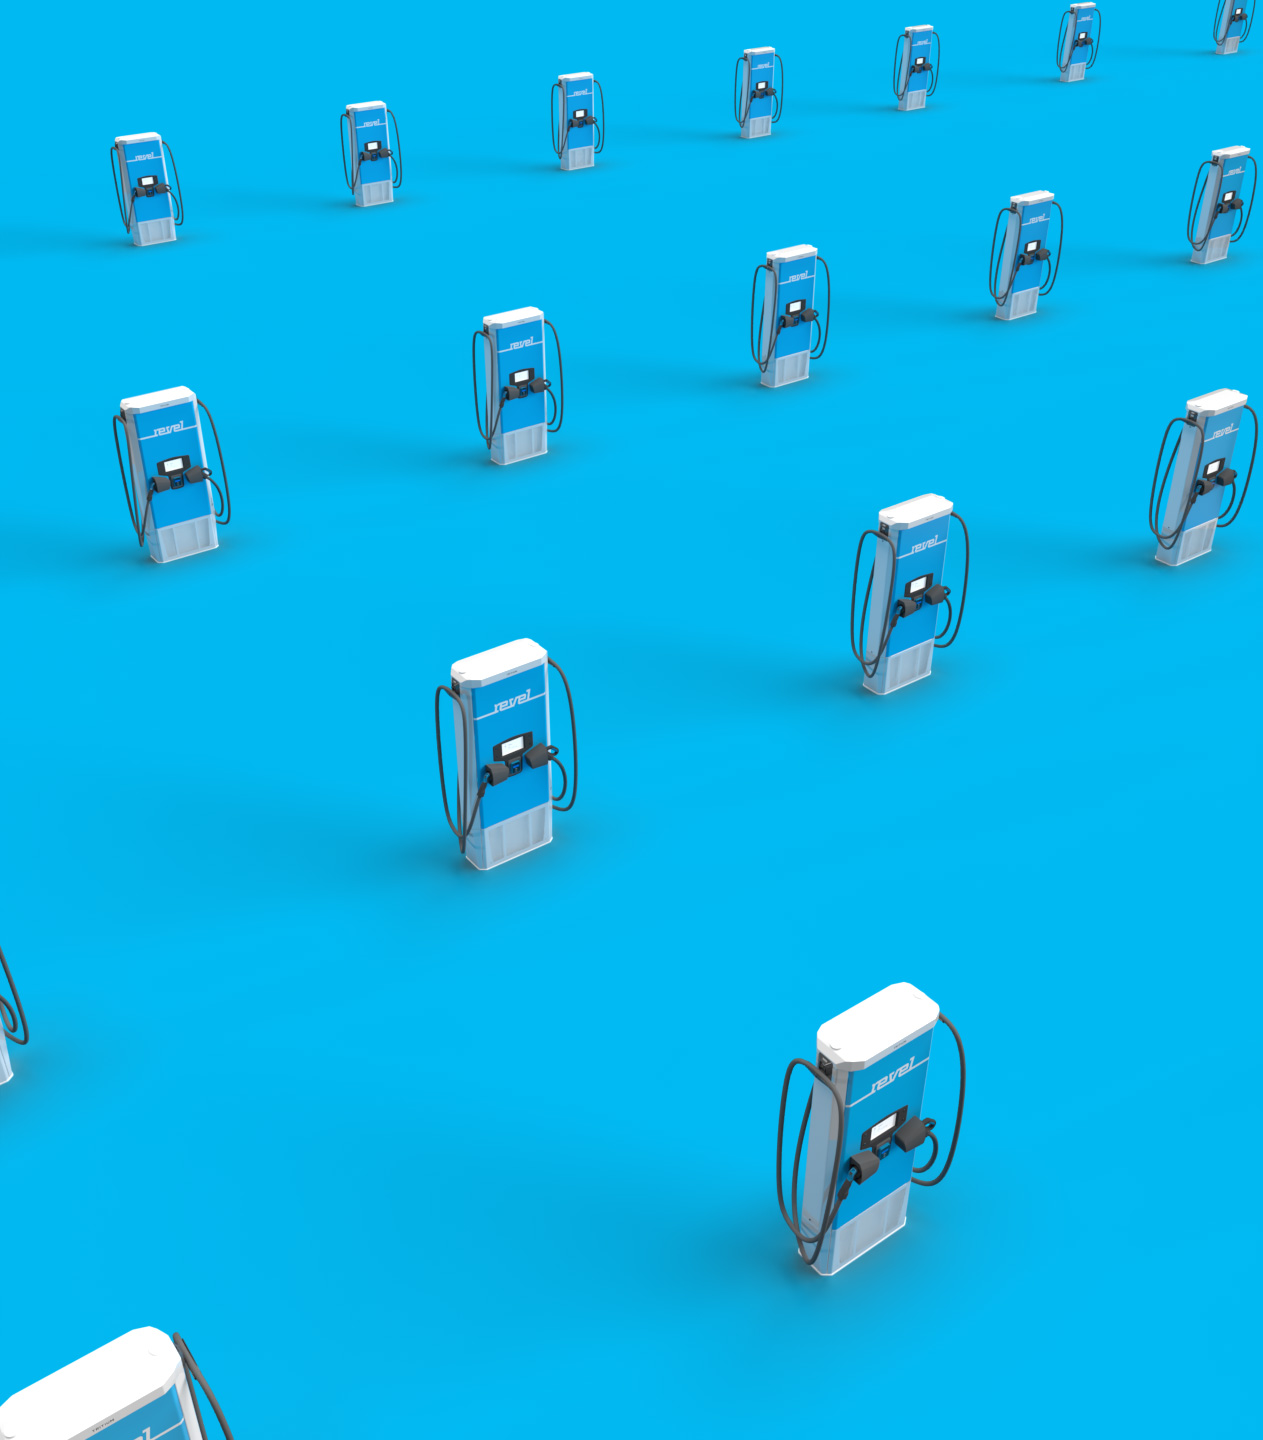 image of a large number of revel fast-chargers on a blue background